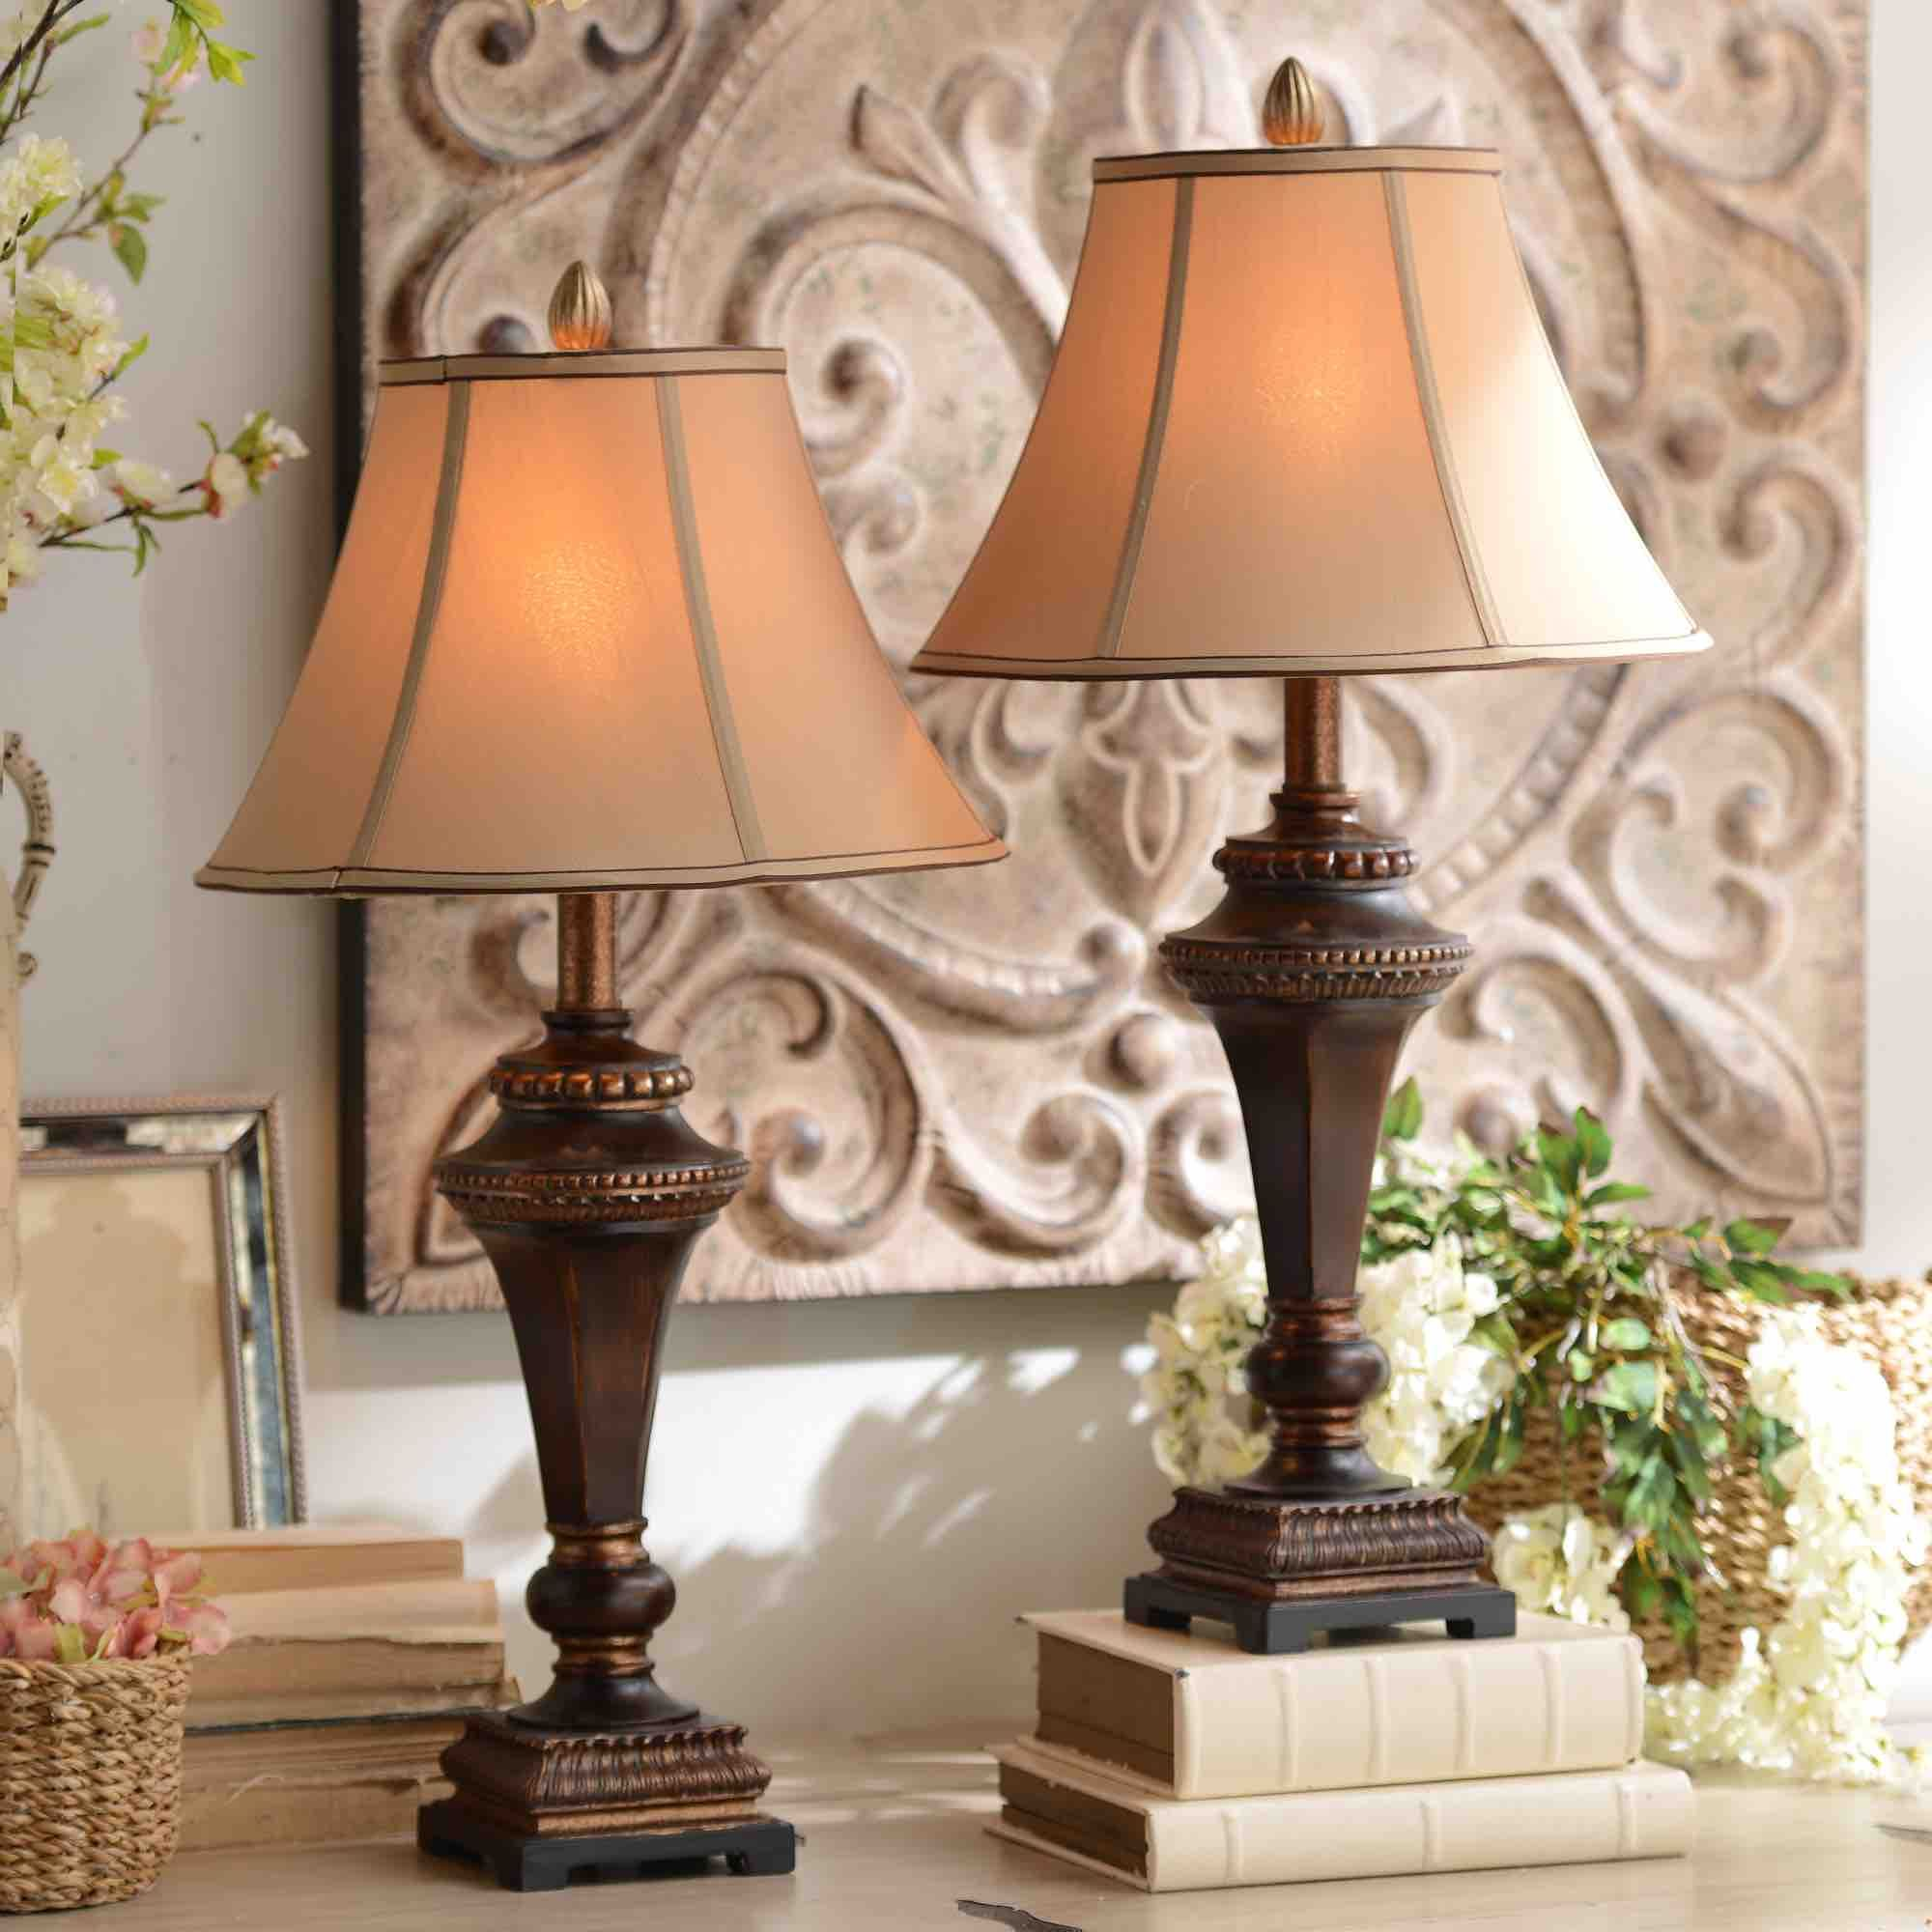 The Set Is Perfect For Accenting A Set Of Nightstands In Your Bedroom Or Adding The Final Touch To A Living Space In Need Of Lamps Living Room Lamp Decor Decor Living room lamps for sale